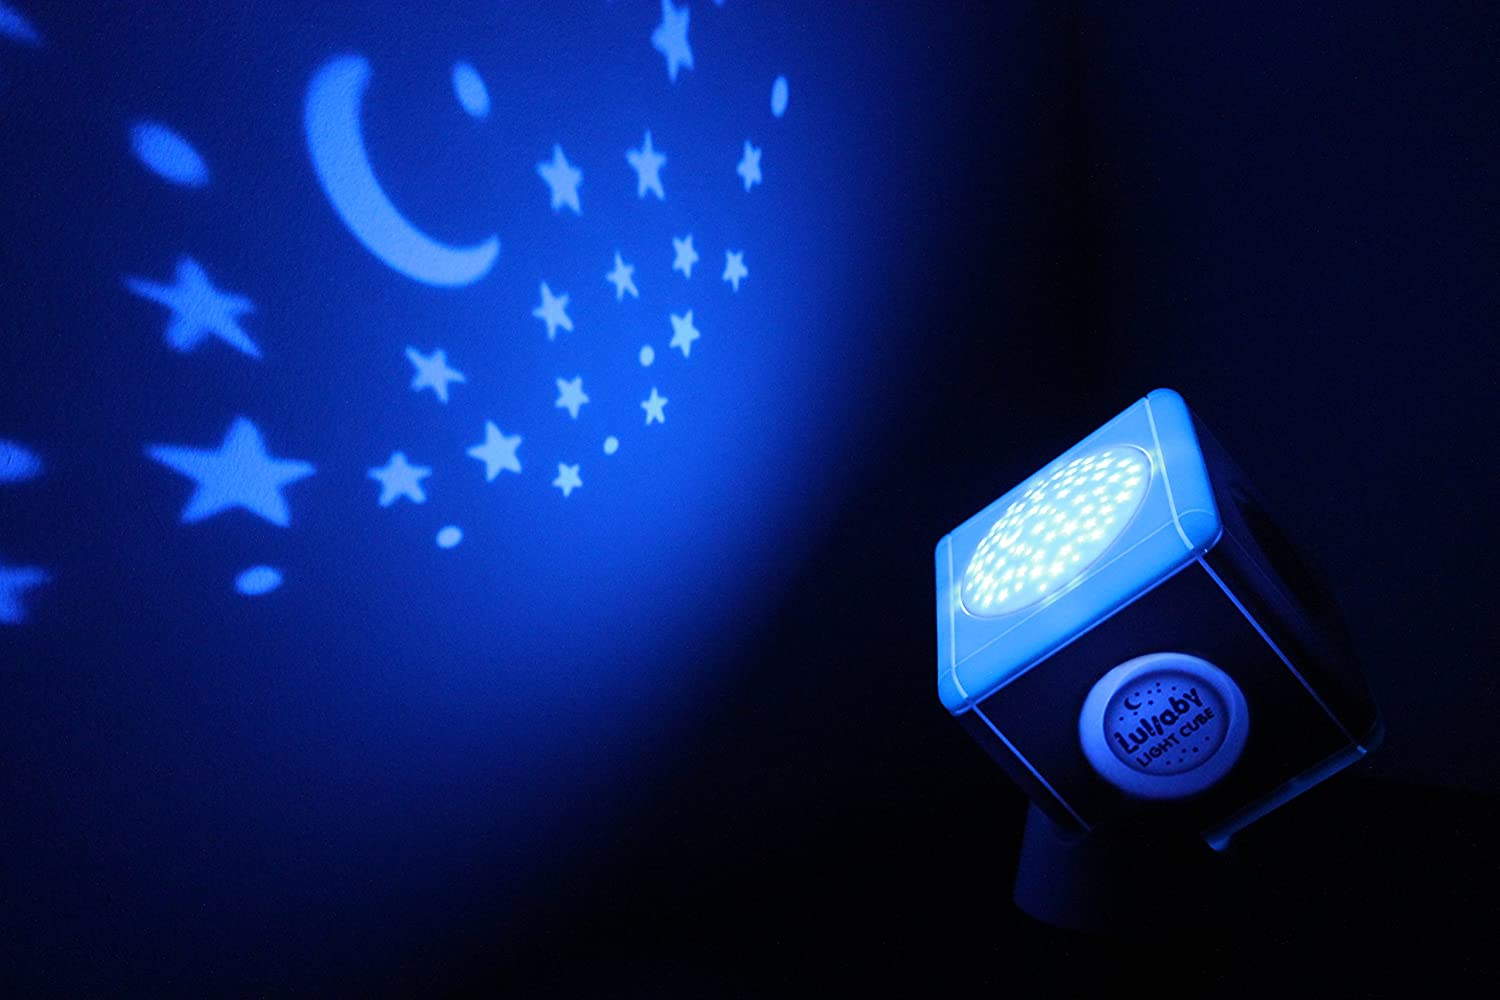 star projector night light reviews. Black Bedroom Furniture Sets. Home Design Ideas